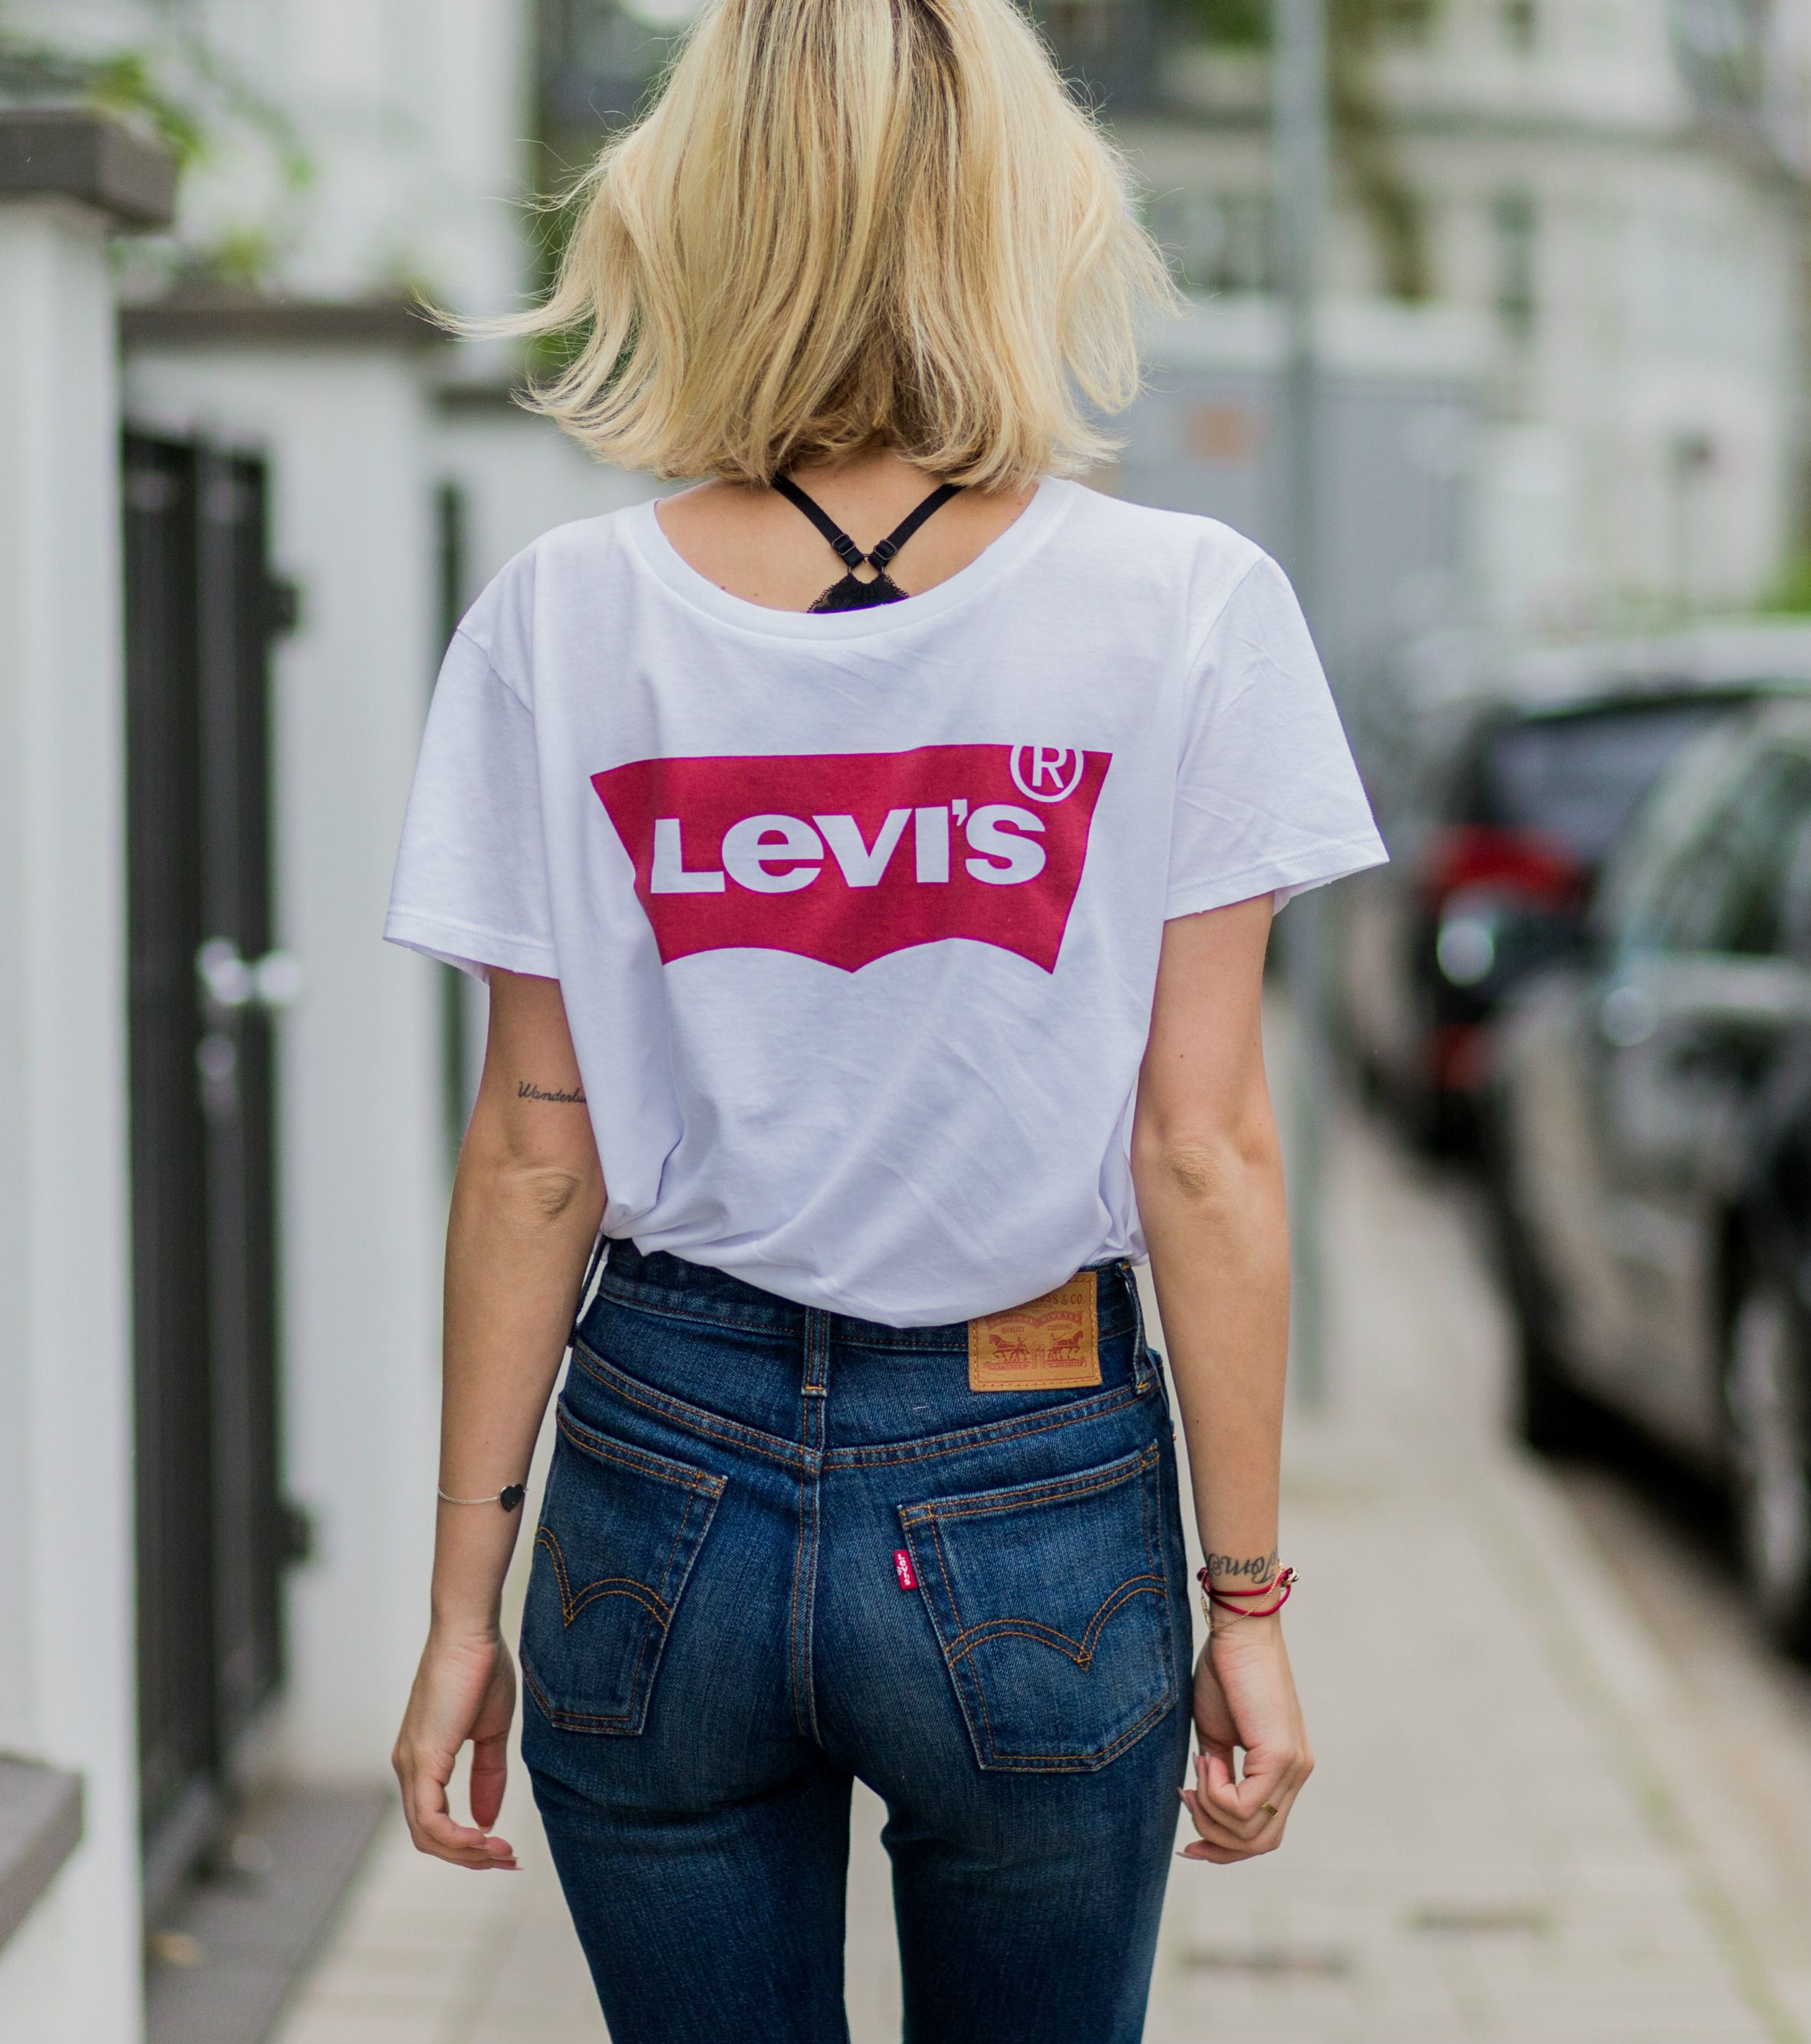 b0597589 Street Style Inspiration for Wearing a Slogan Tee | classic @levisbrand  look with t-shirt and high waist jeans